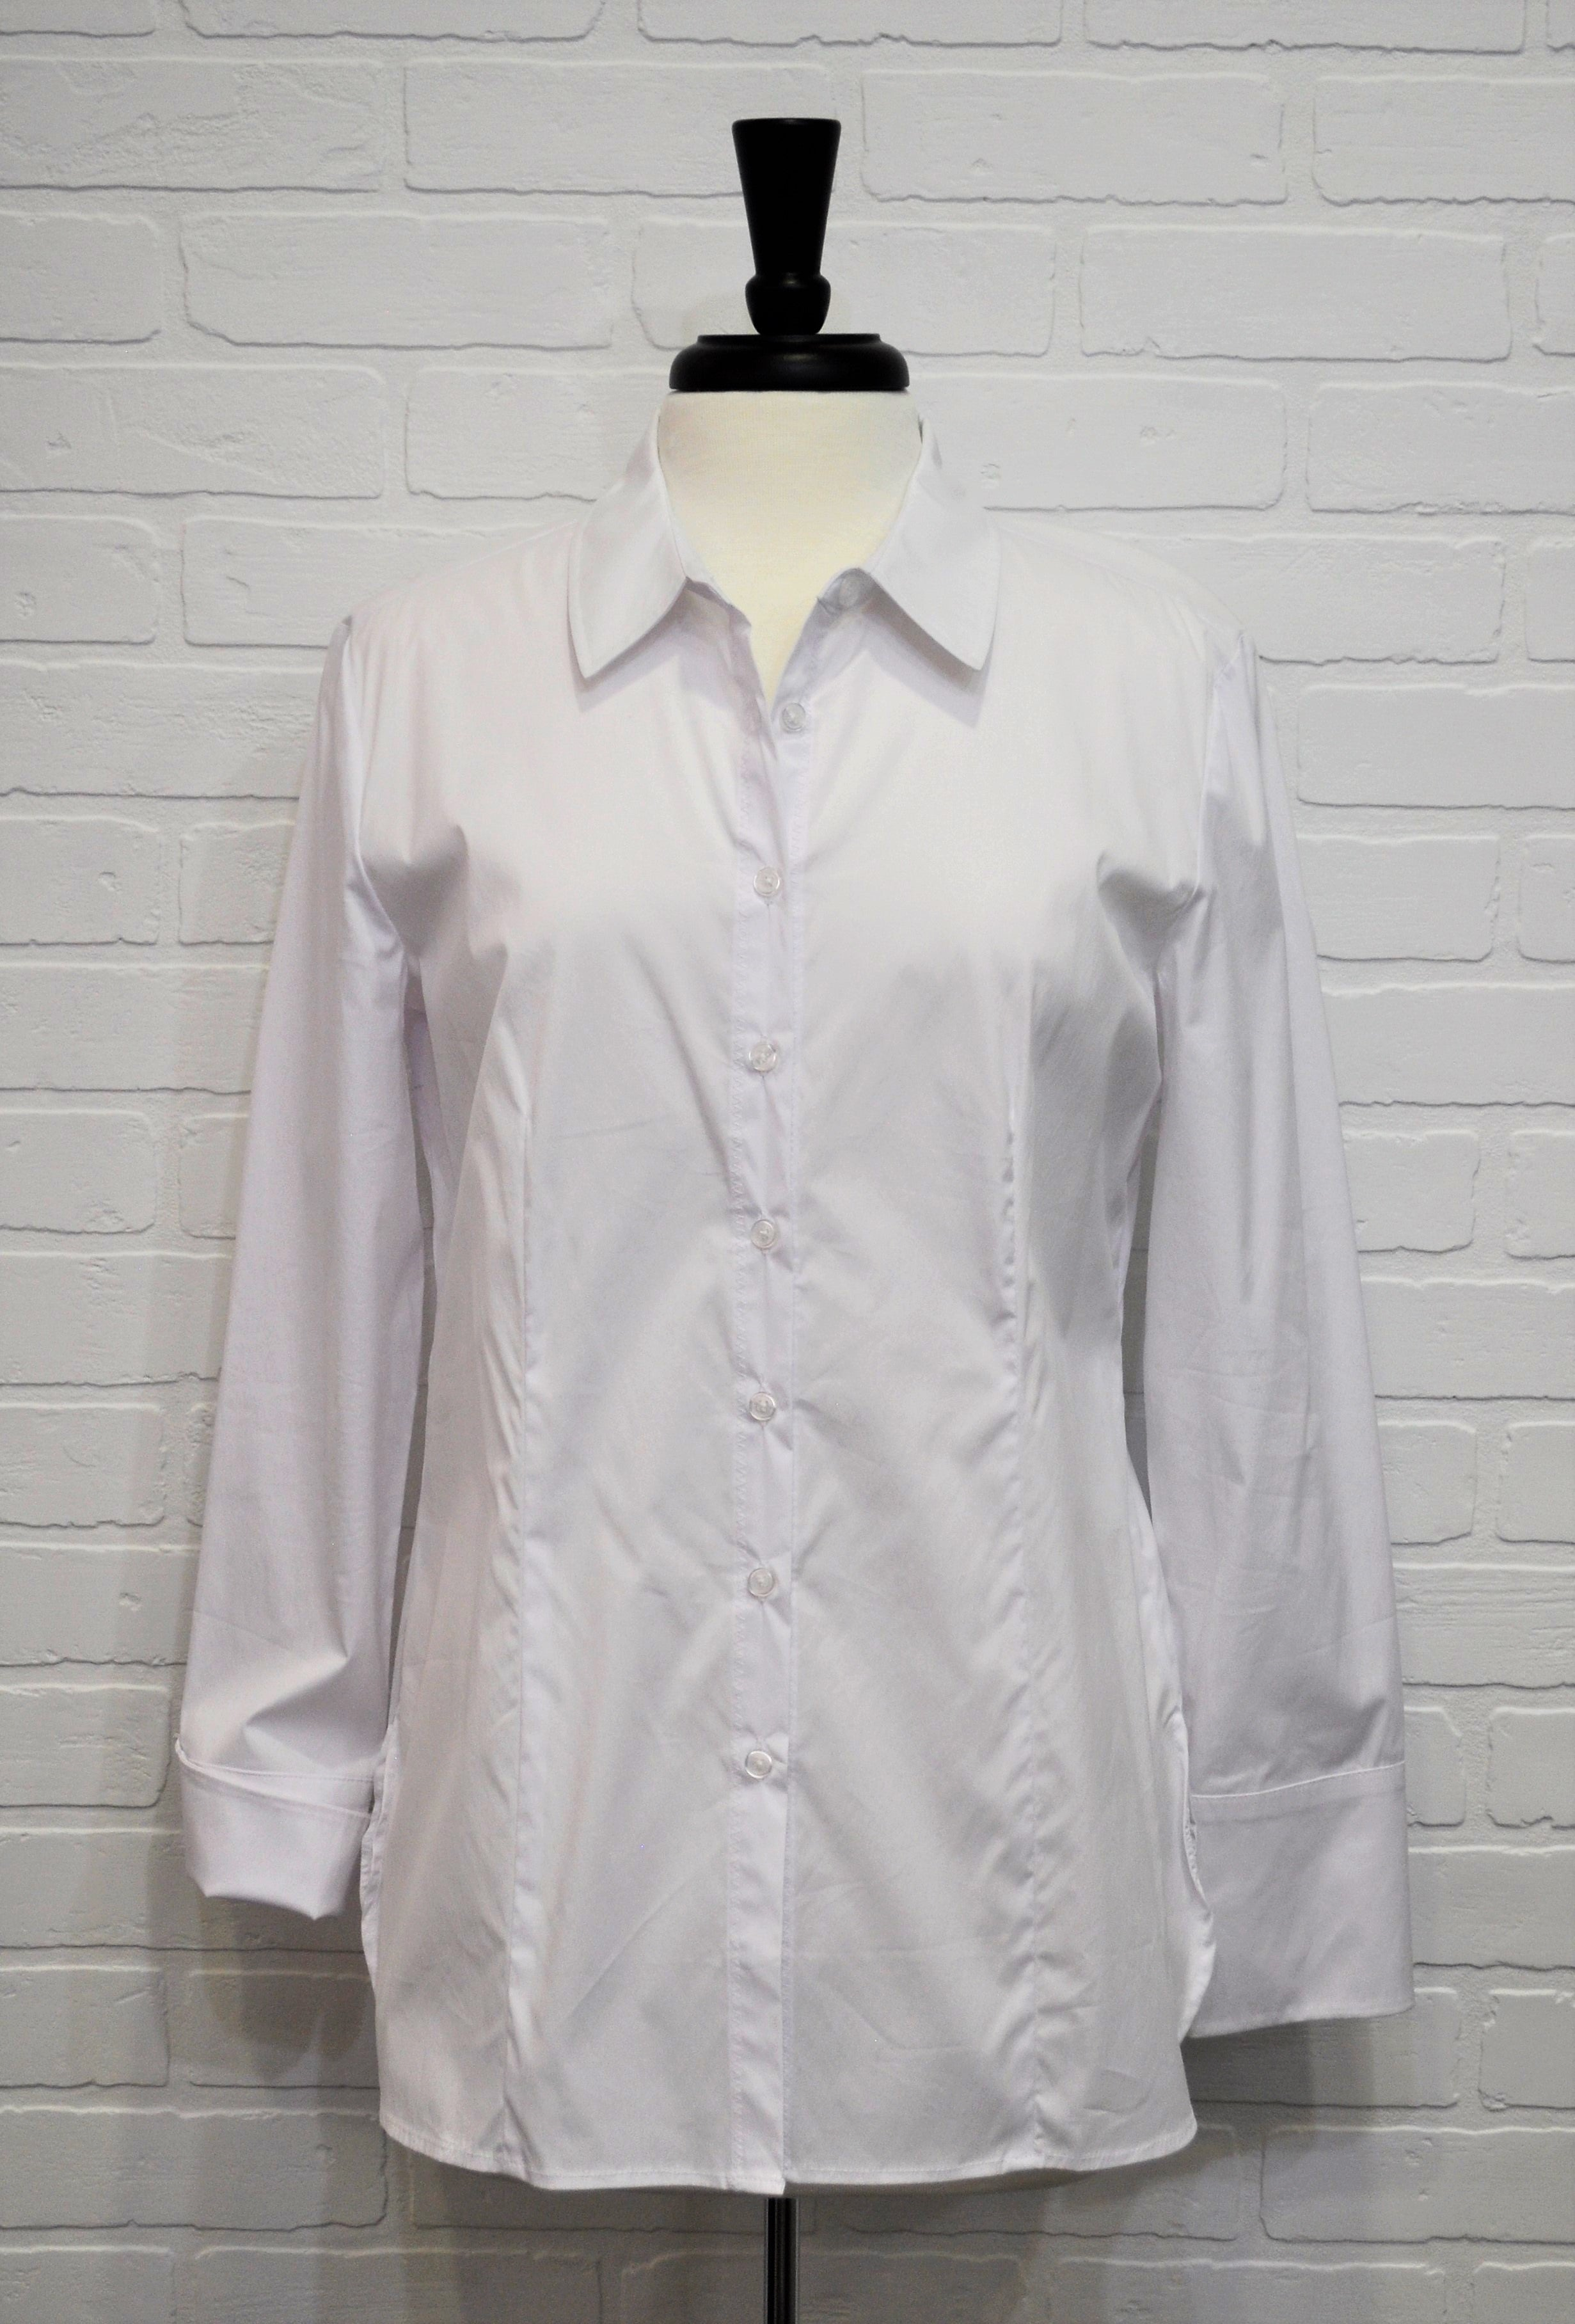 White Oxford Button Up